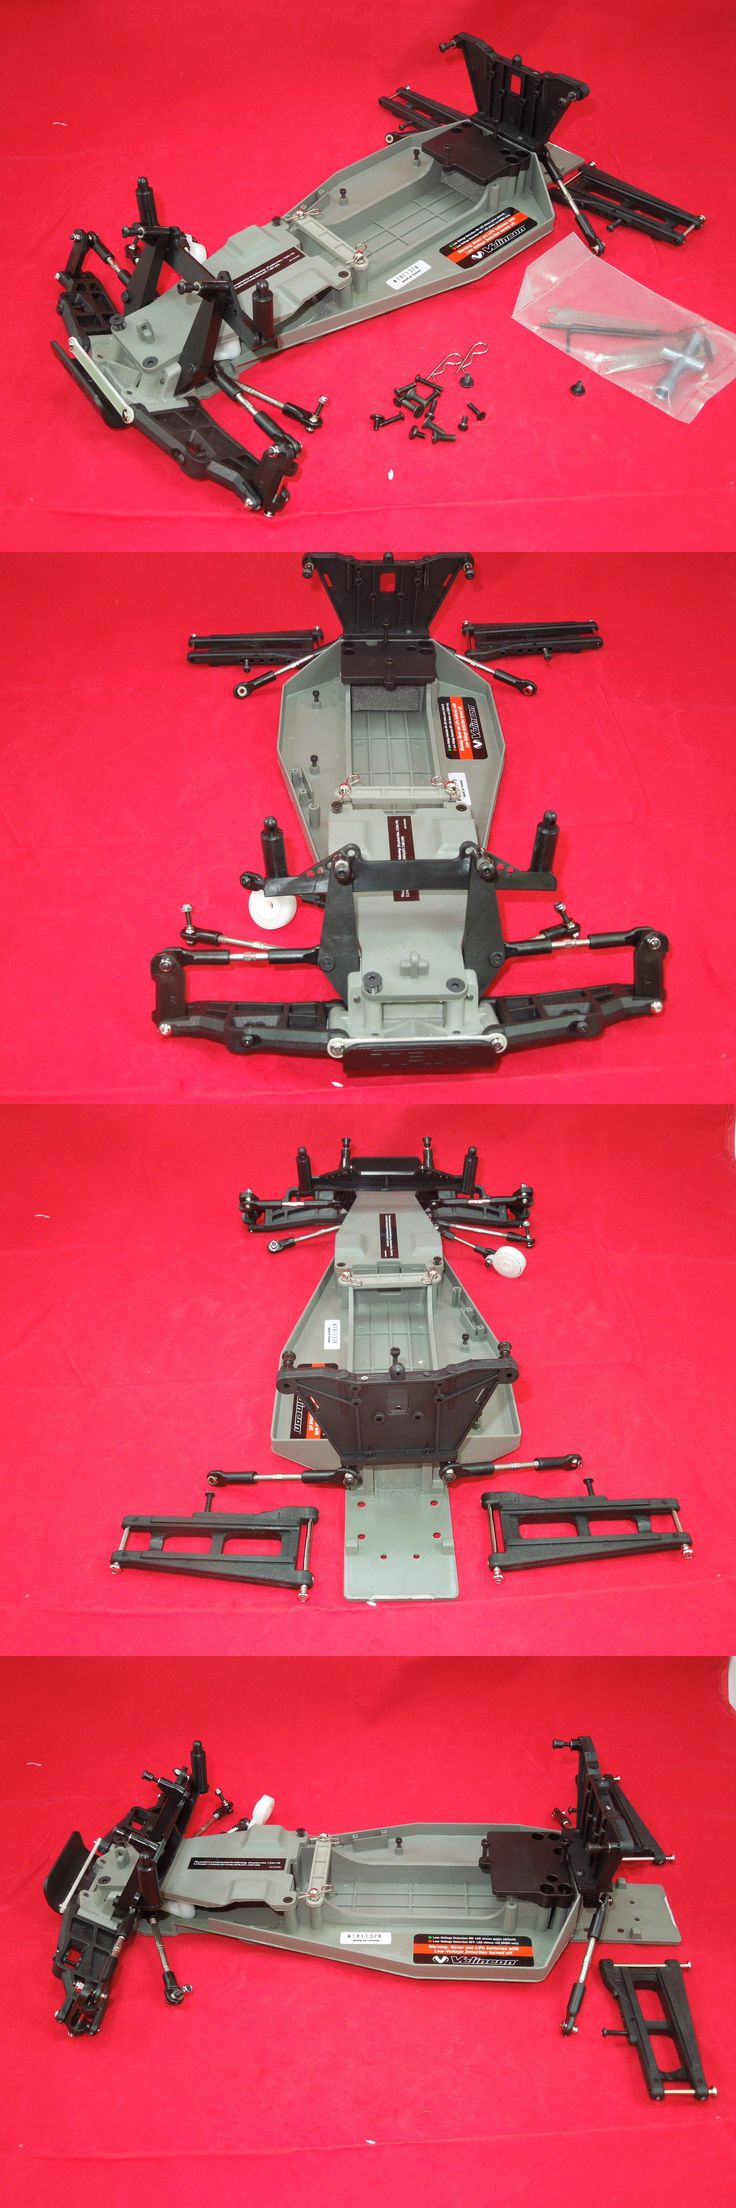 Chassis Plates Frames and Kits 182198: Traxxas Rustler Vxl Chassis Parts Lot + Tools Roller Rolling Xl-5 New Brushless -> BUY IT NOW ONLY: $52.99 on eBay!